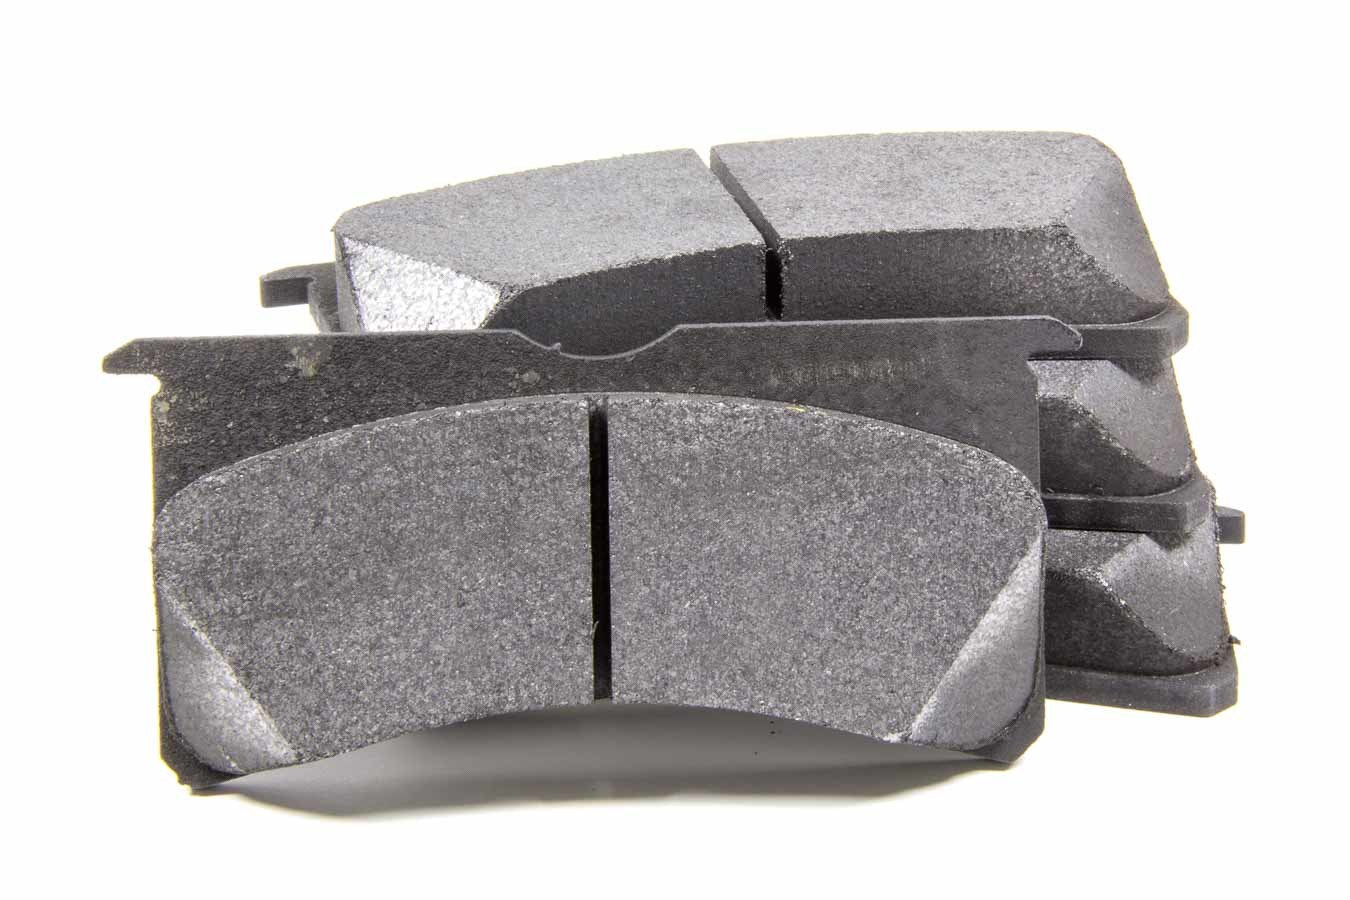 Performance Friction 7751-11-20-44 Brake Pads, 11 Compound, All Temperatures, Ap / Outlaw / Wilwood SL Calipers, Set of 4